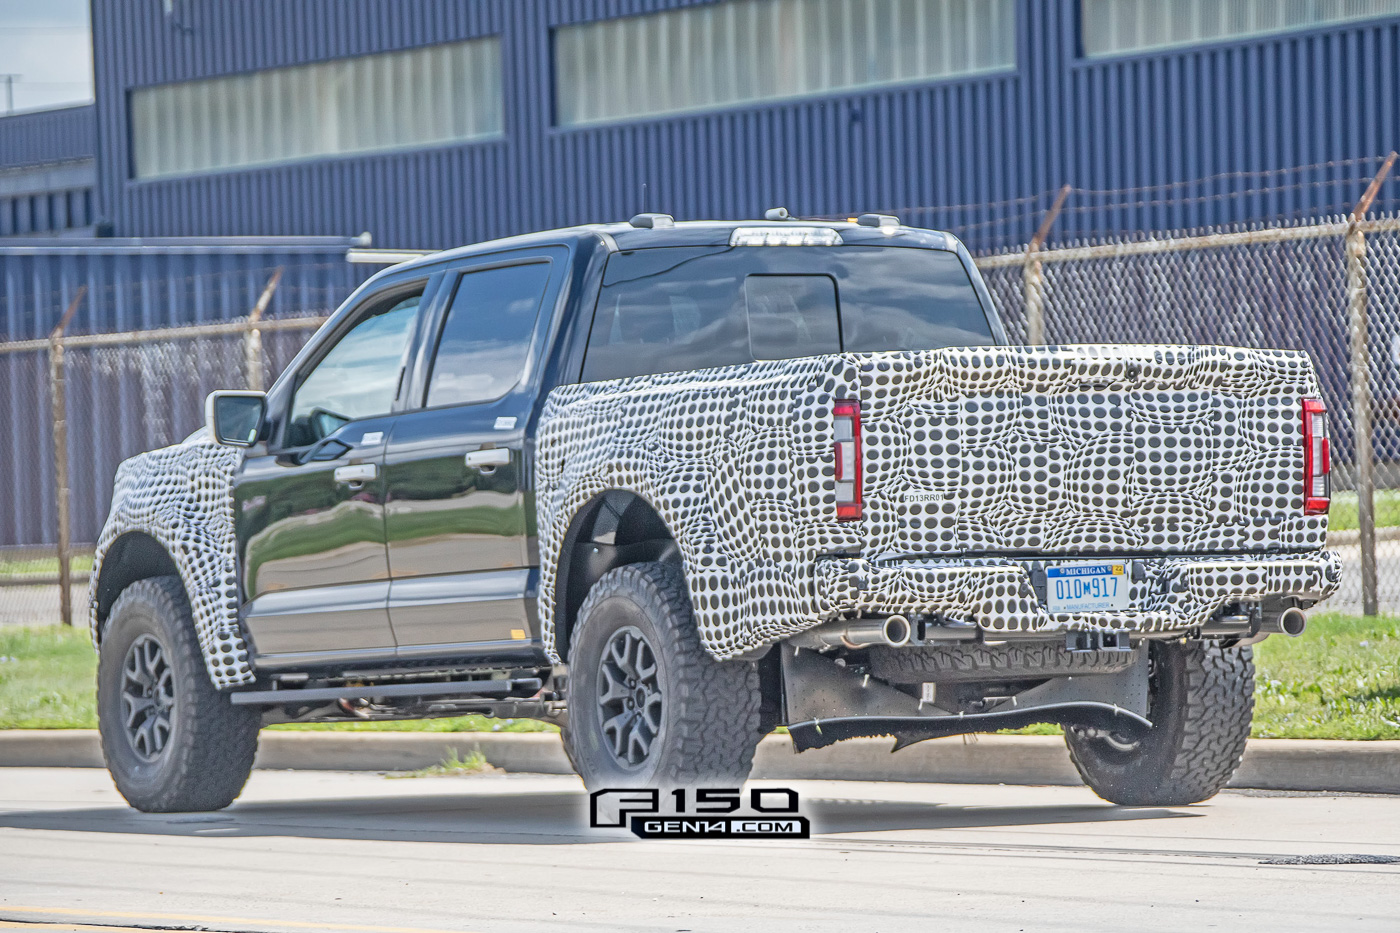 2021-F-150-Raptor-Prototype-Suspension-Spied-22.jpg